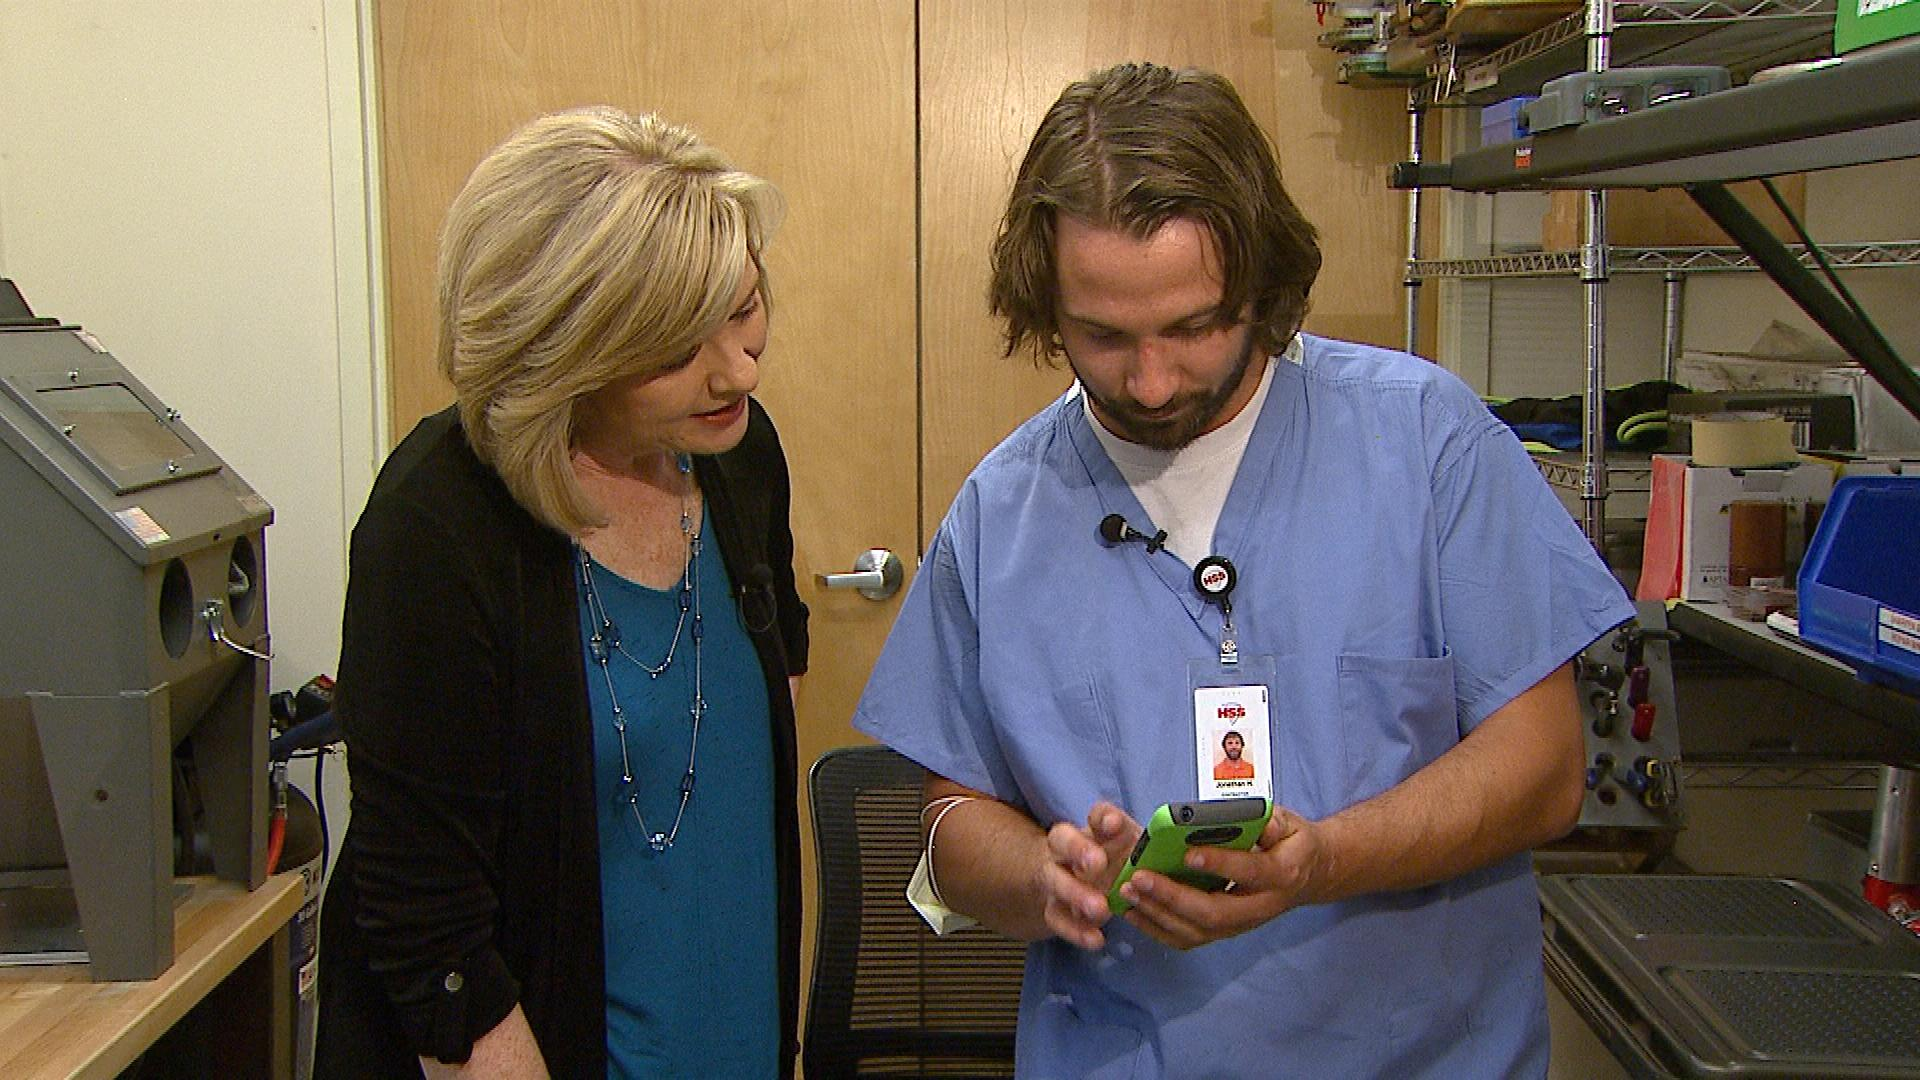 Johnathon Hardman shows CBS4's Kathy Walsh a picture of his new dog Blitz (credit: CBS)